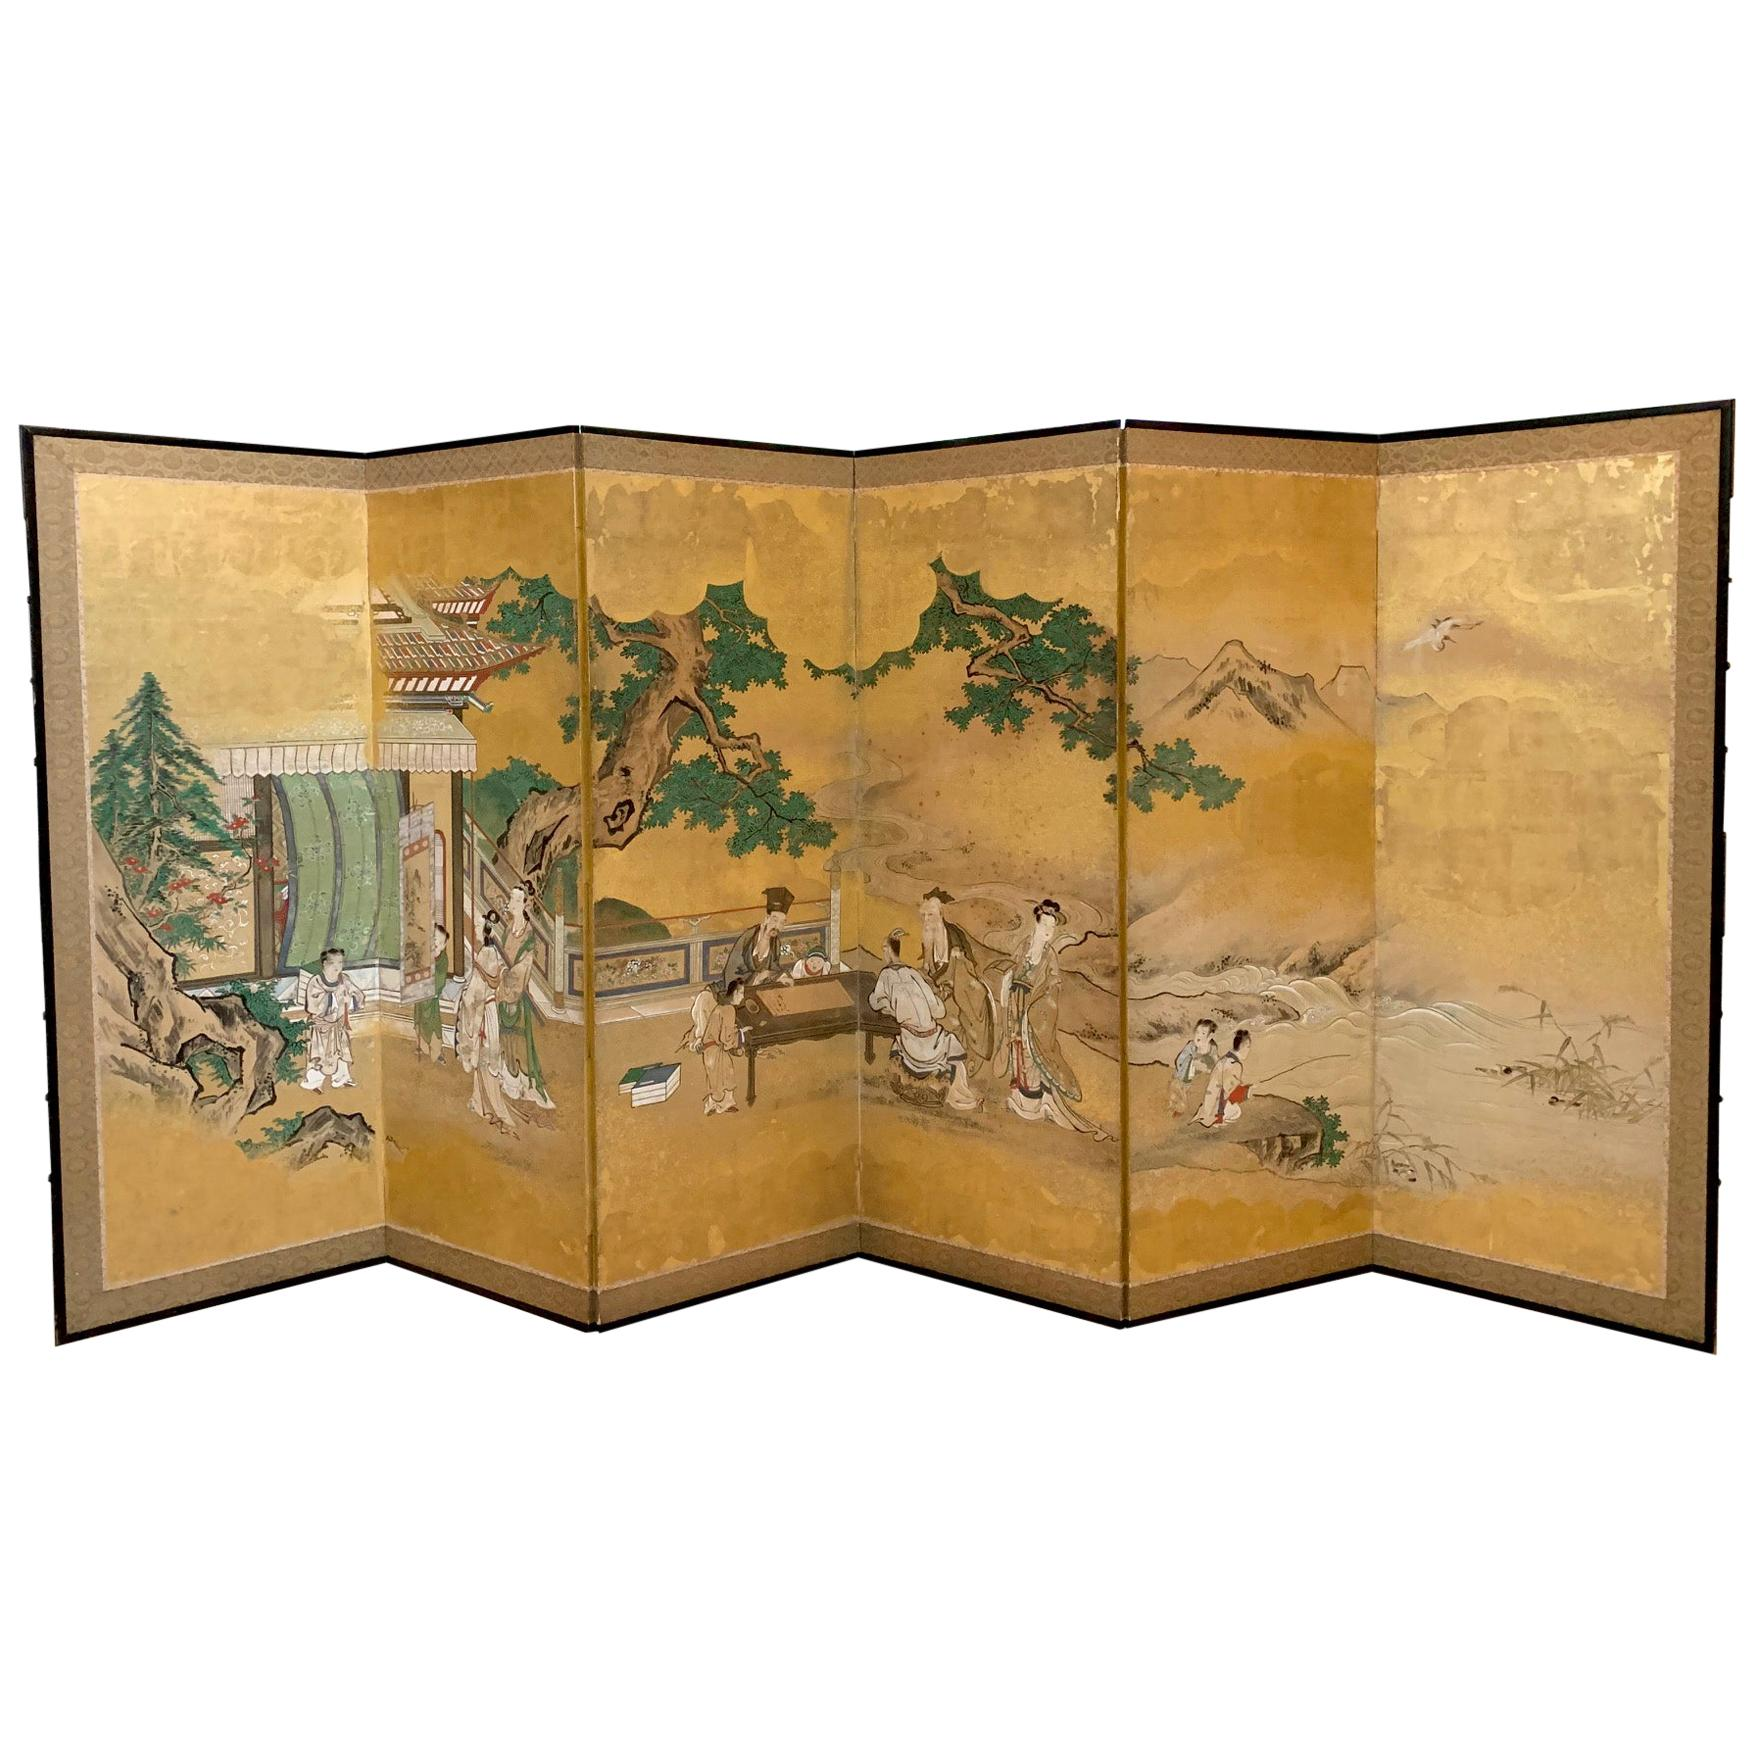 Antique Japanese Folding Floor Screen Kano School with Provenance